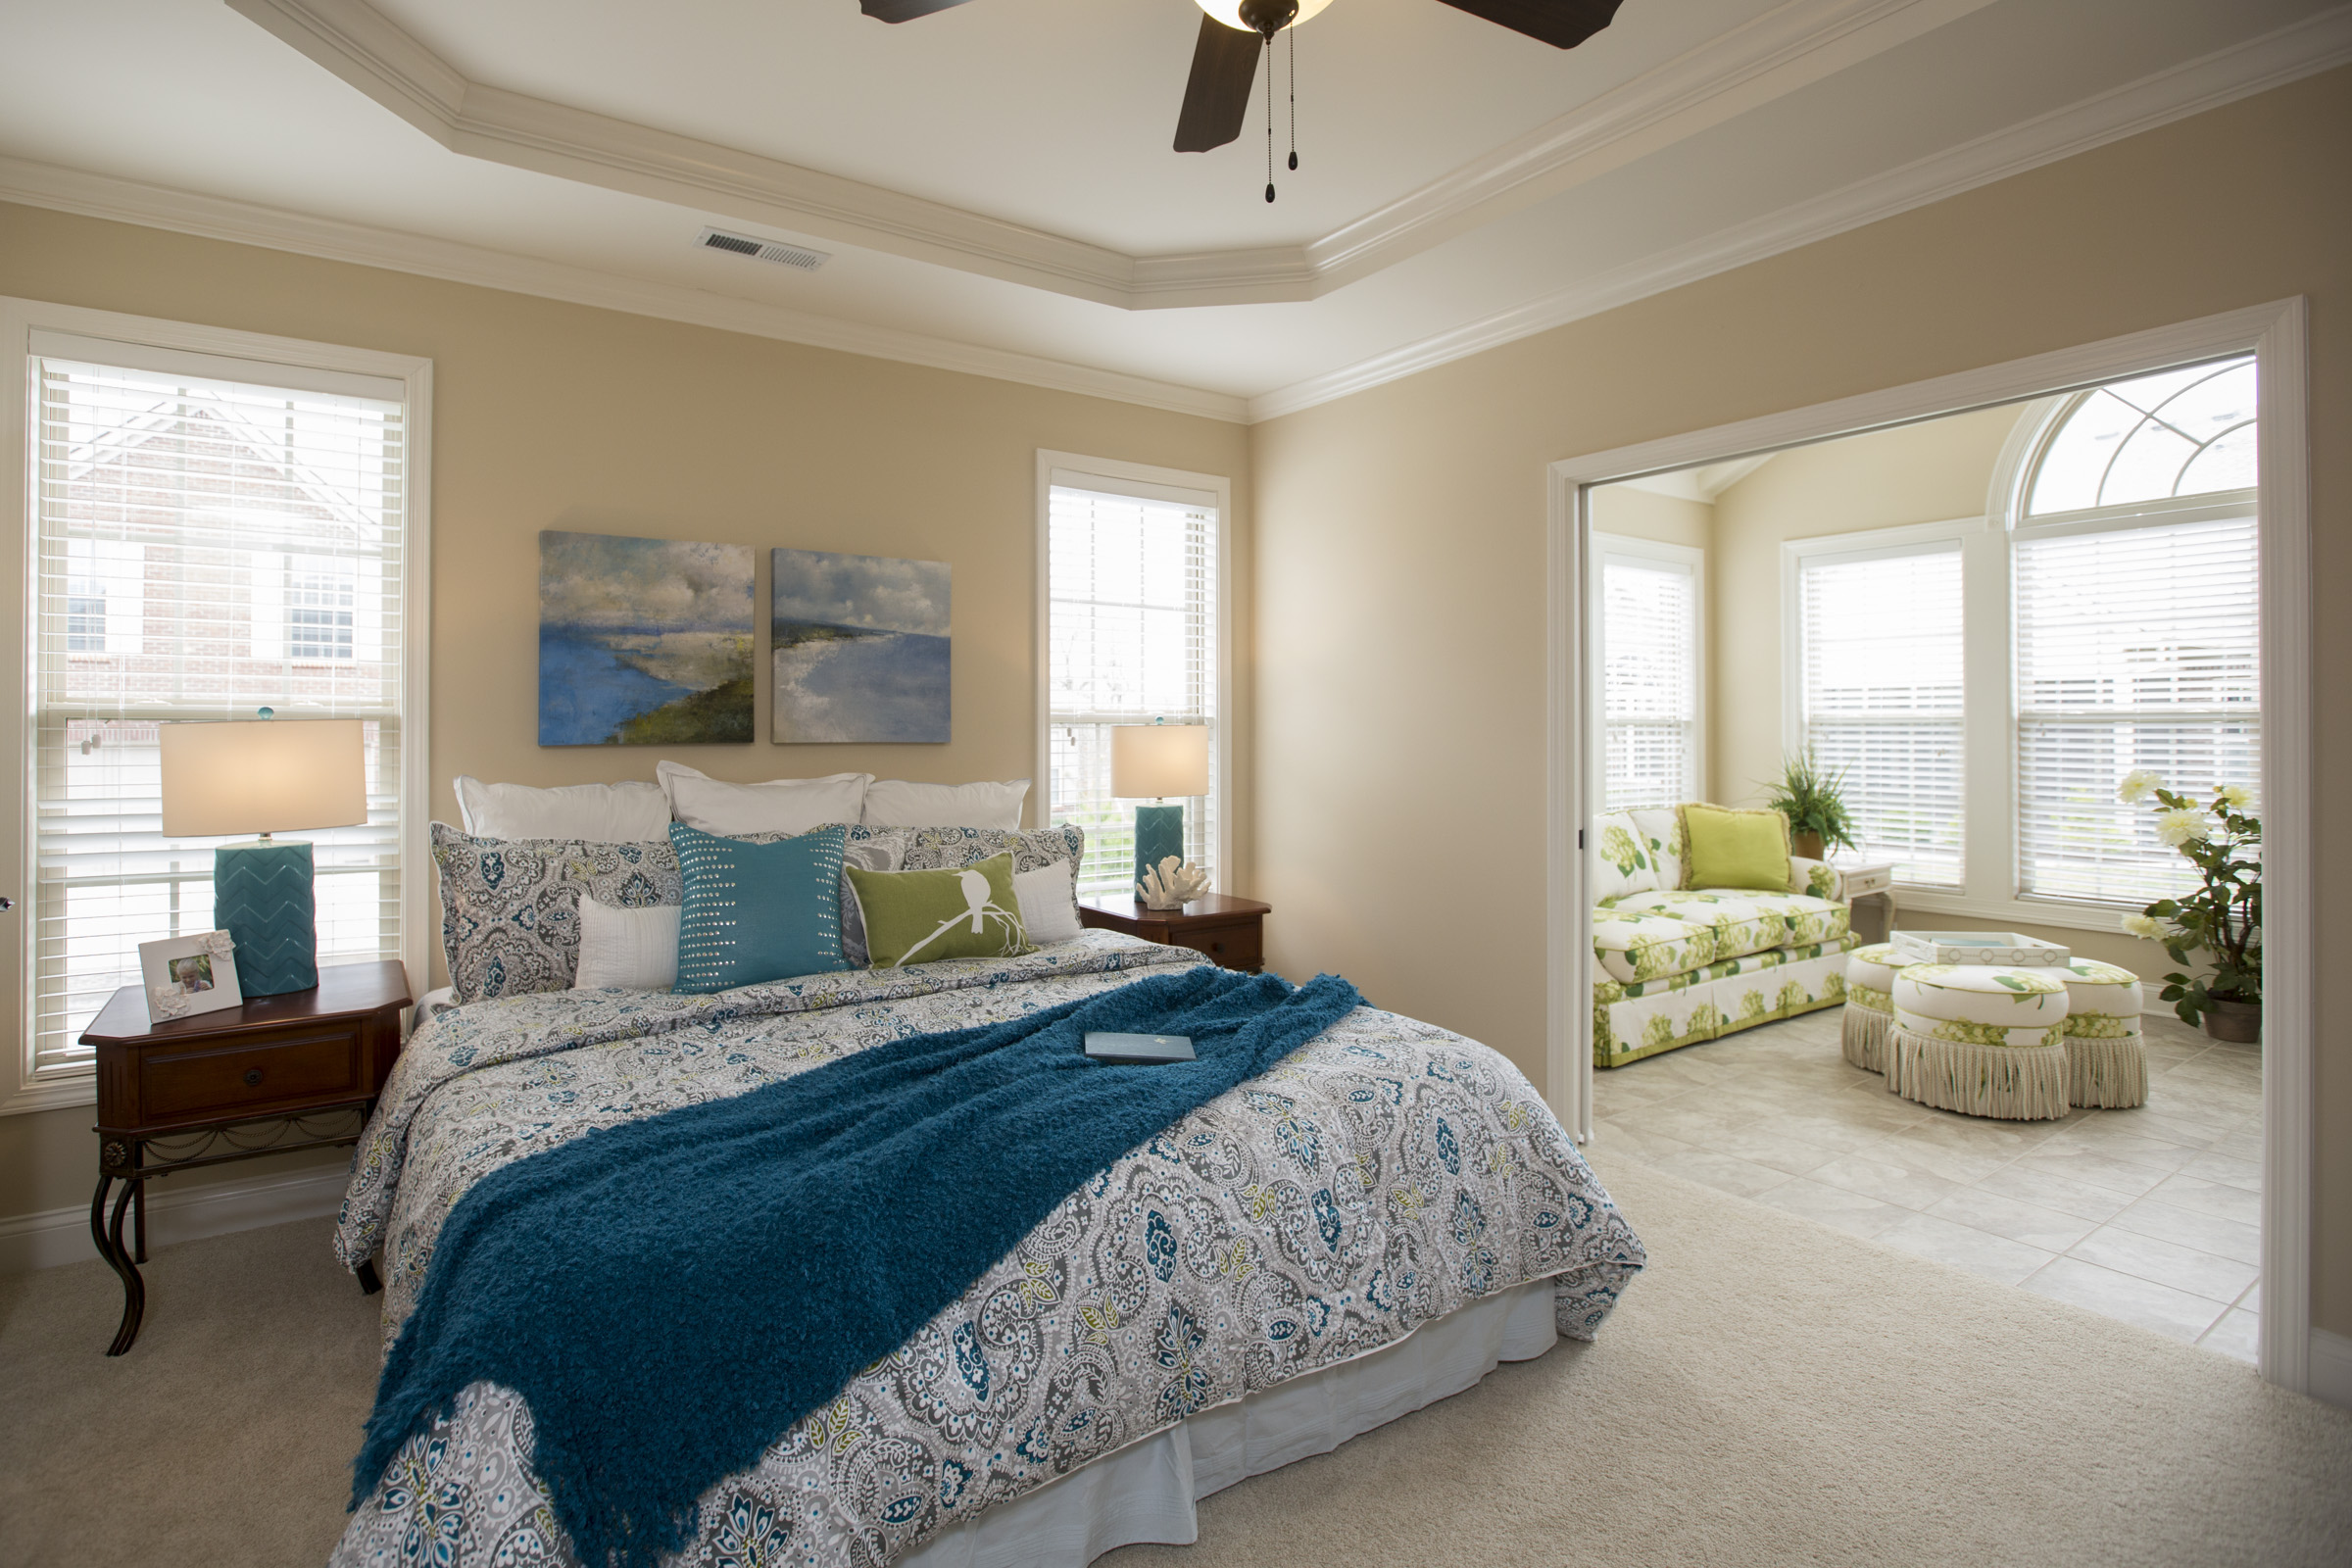 Decor and design - Master bedroom retreat decorating ideas ...